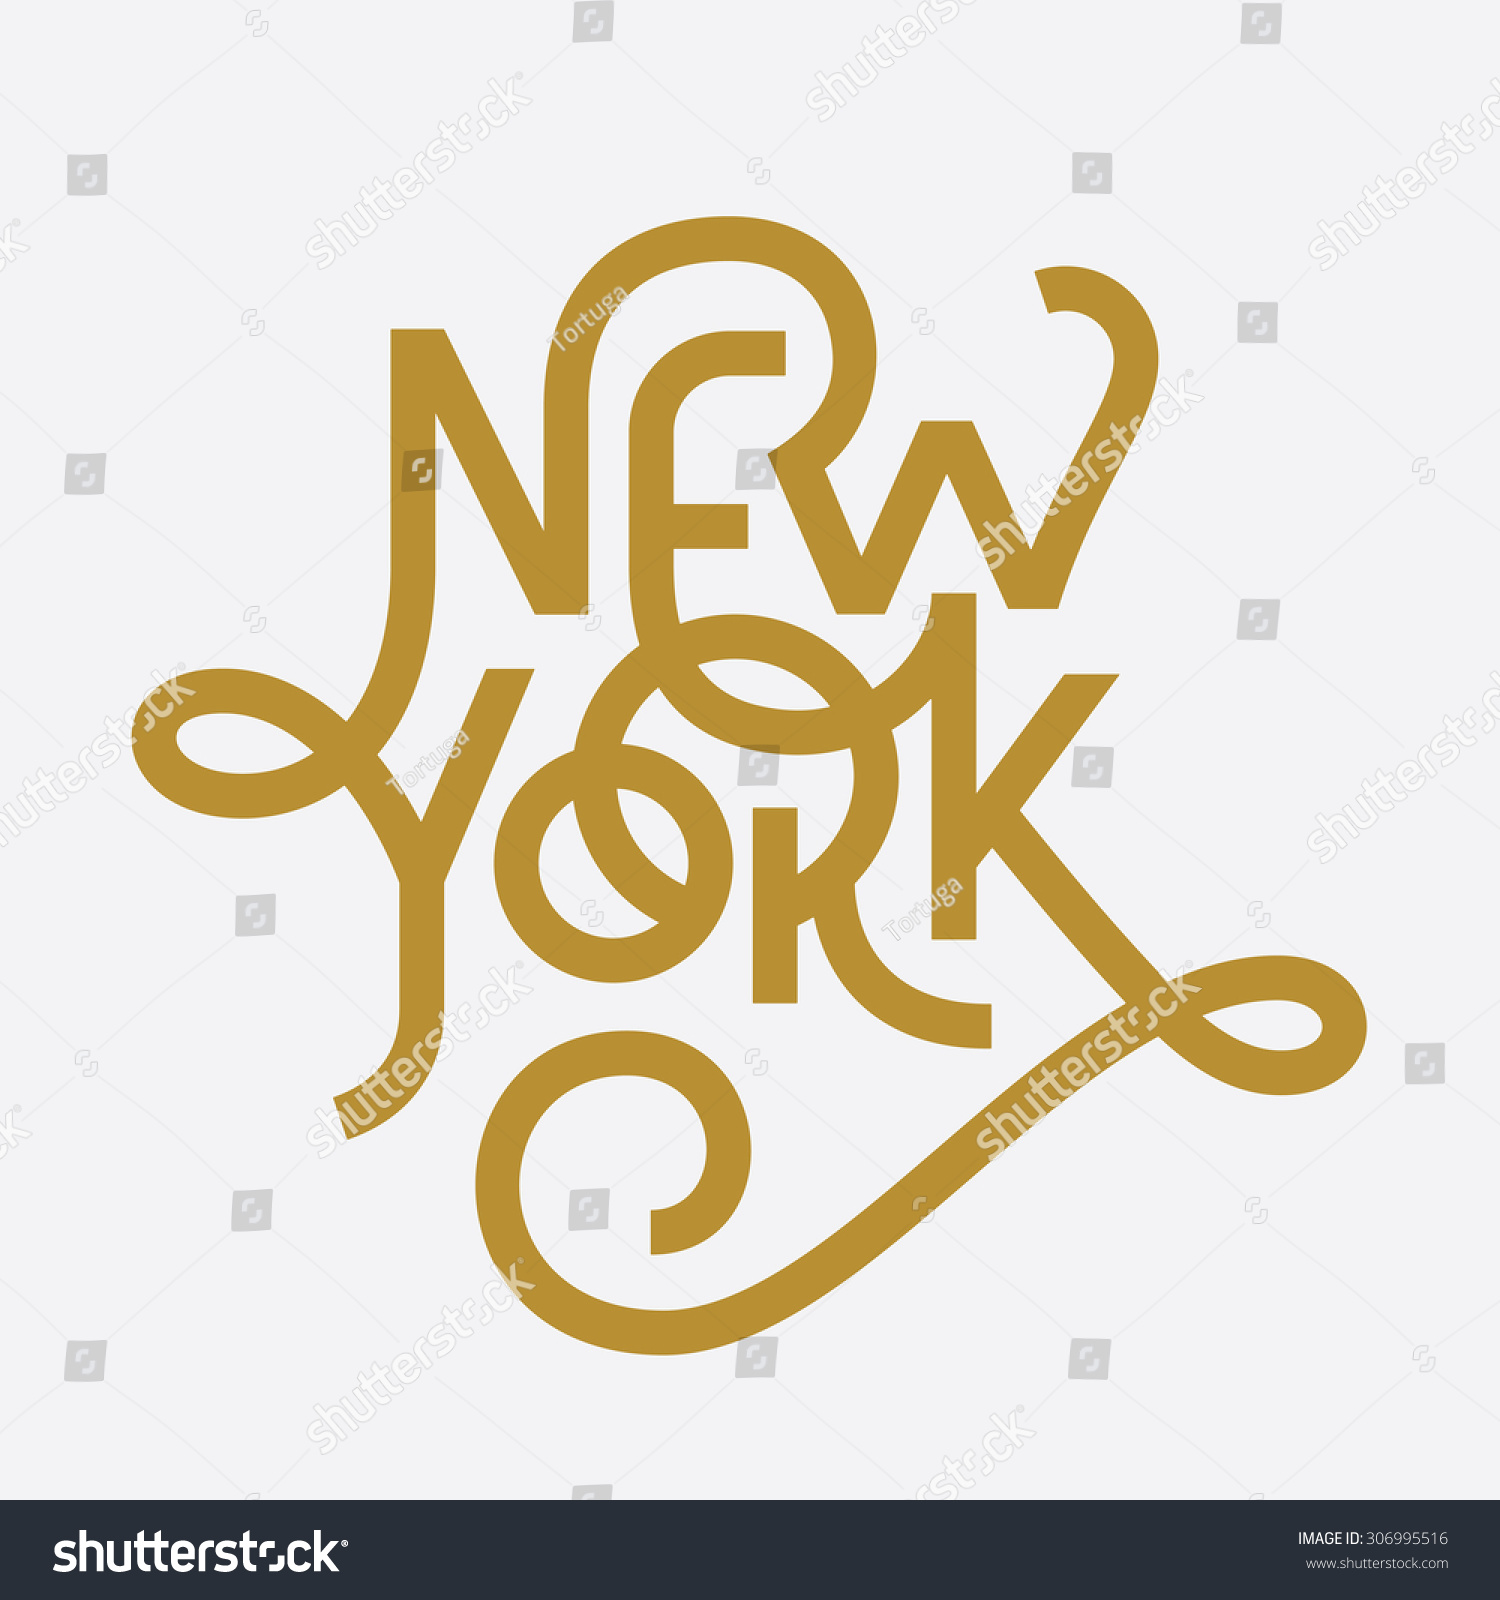 Vintage Hand Lettered Textured New York Stock Vector (Royalty Free ...